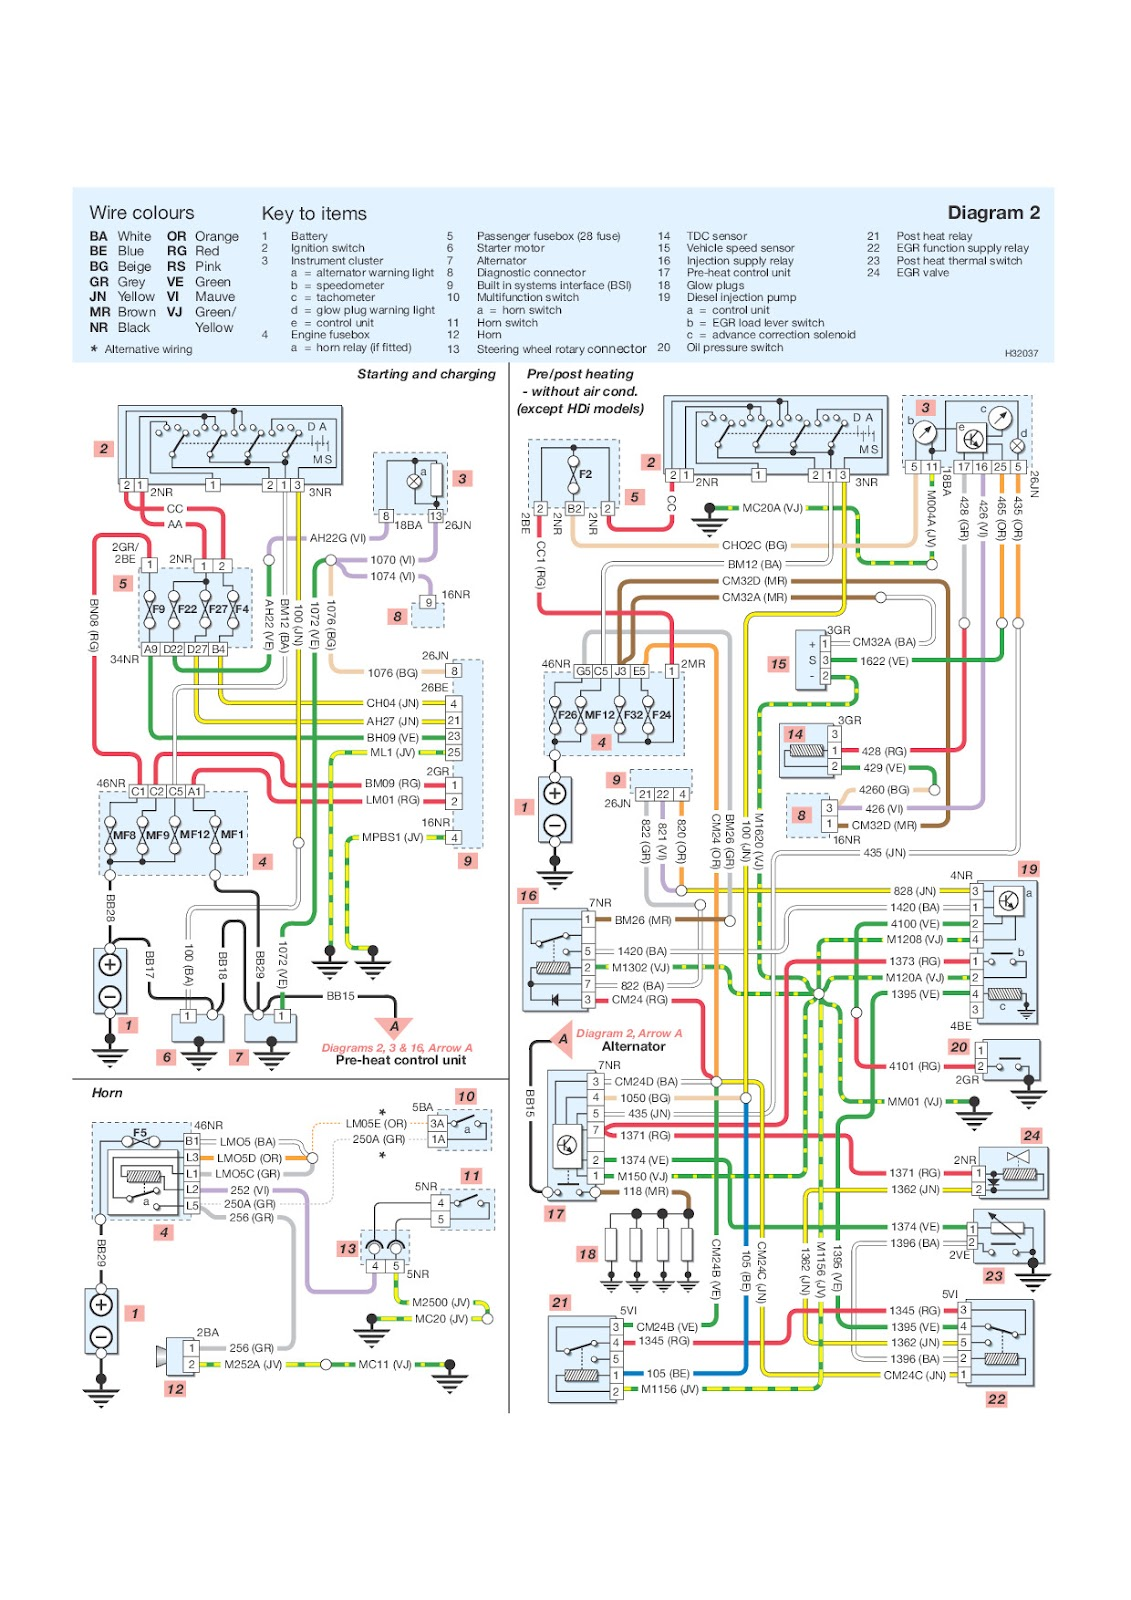 your wiring diagrams source peugeot 206 starting charging horn rh allwiringdiagrams blogspot com peugeot wiring diagrams скачать peugeot wiring diagrams online